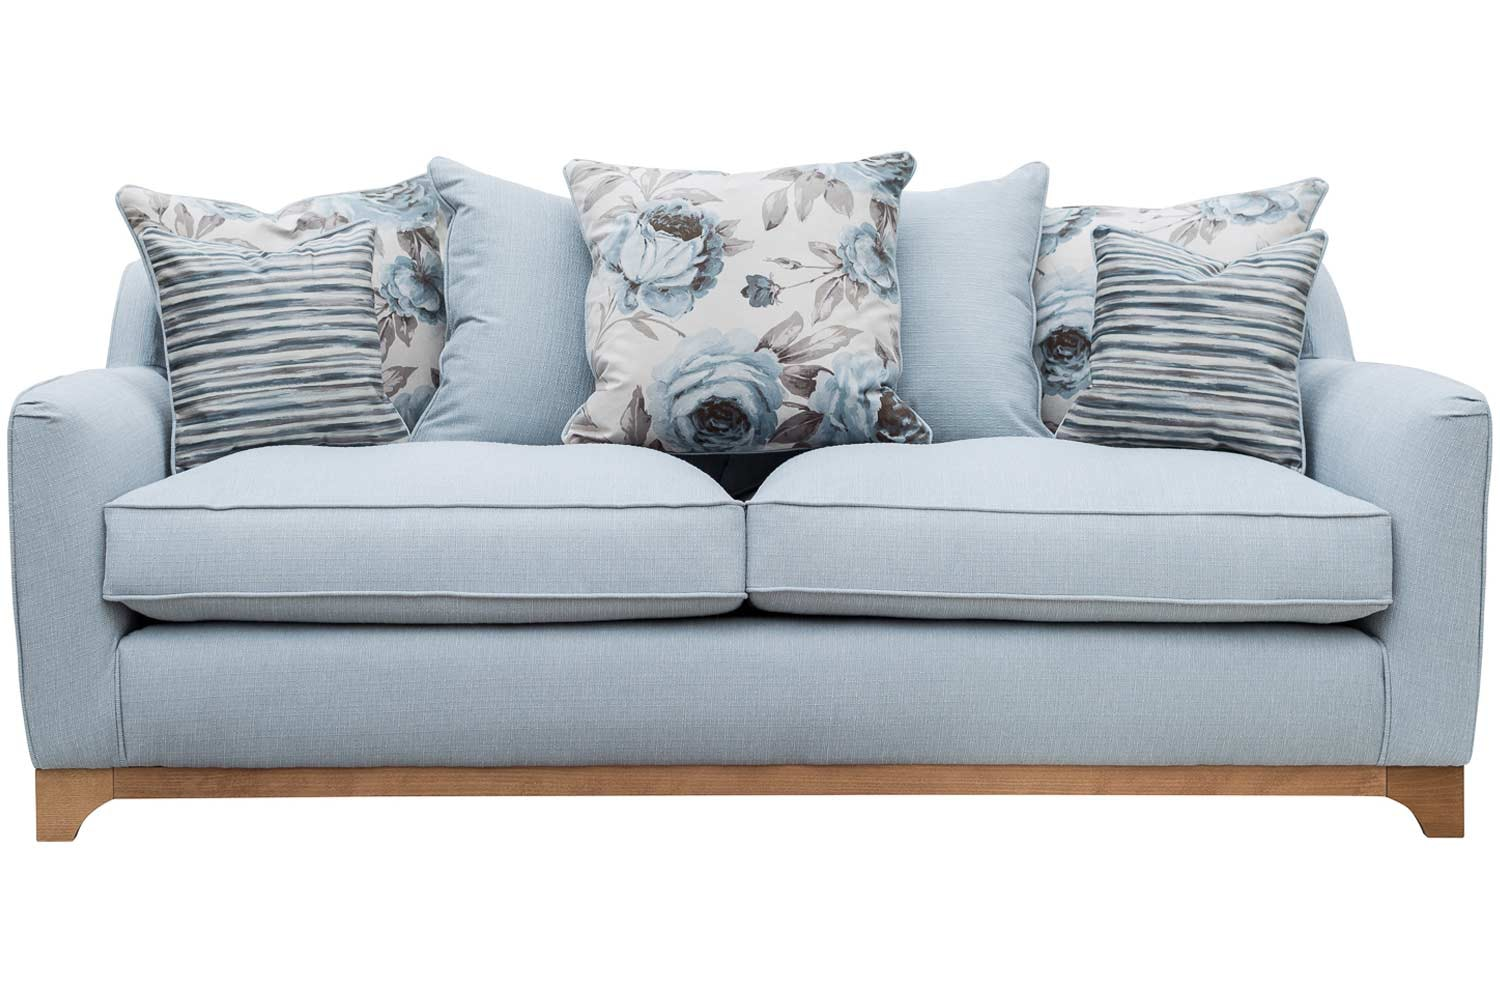 Casey 3-Seater Sofa